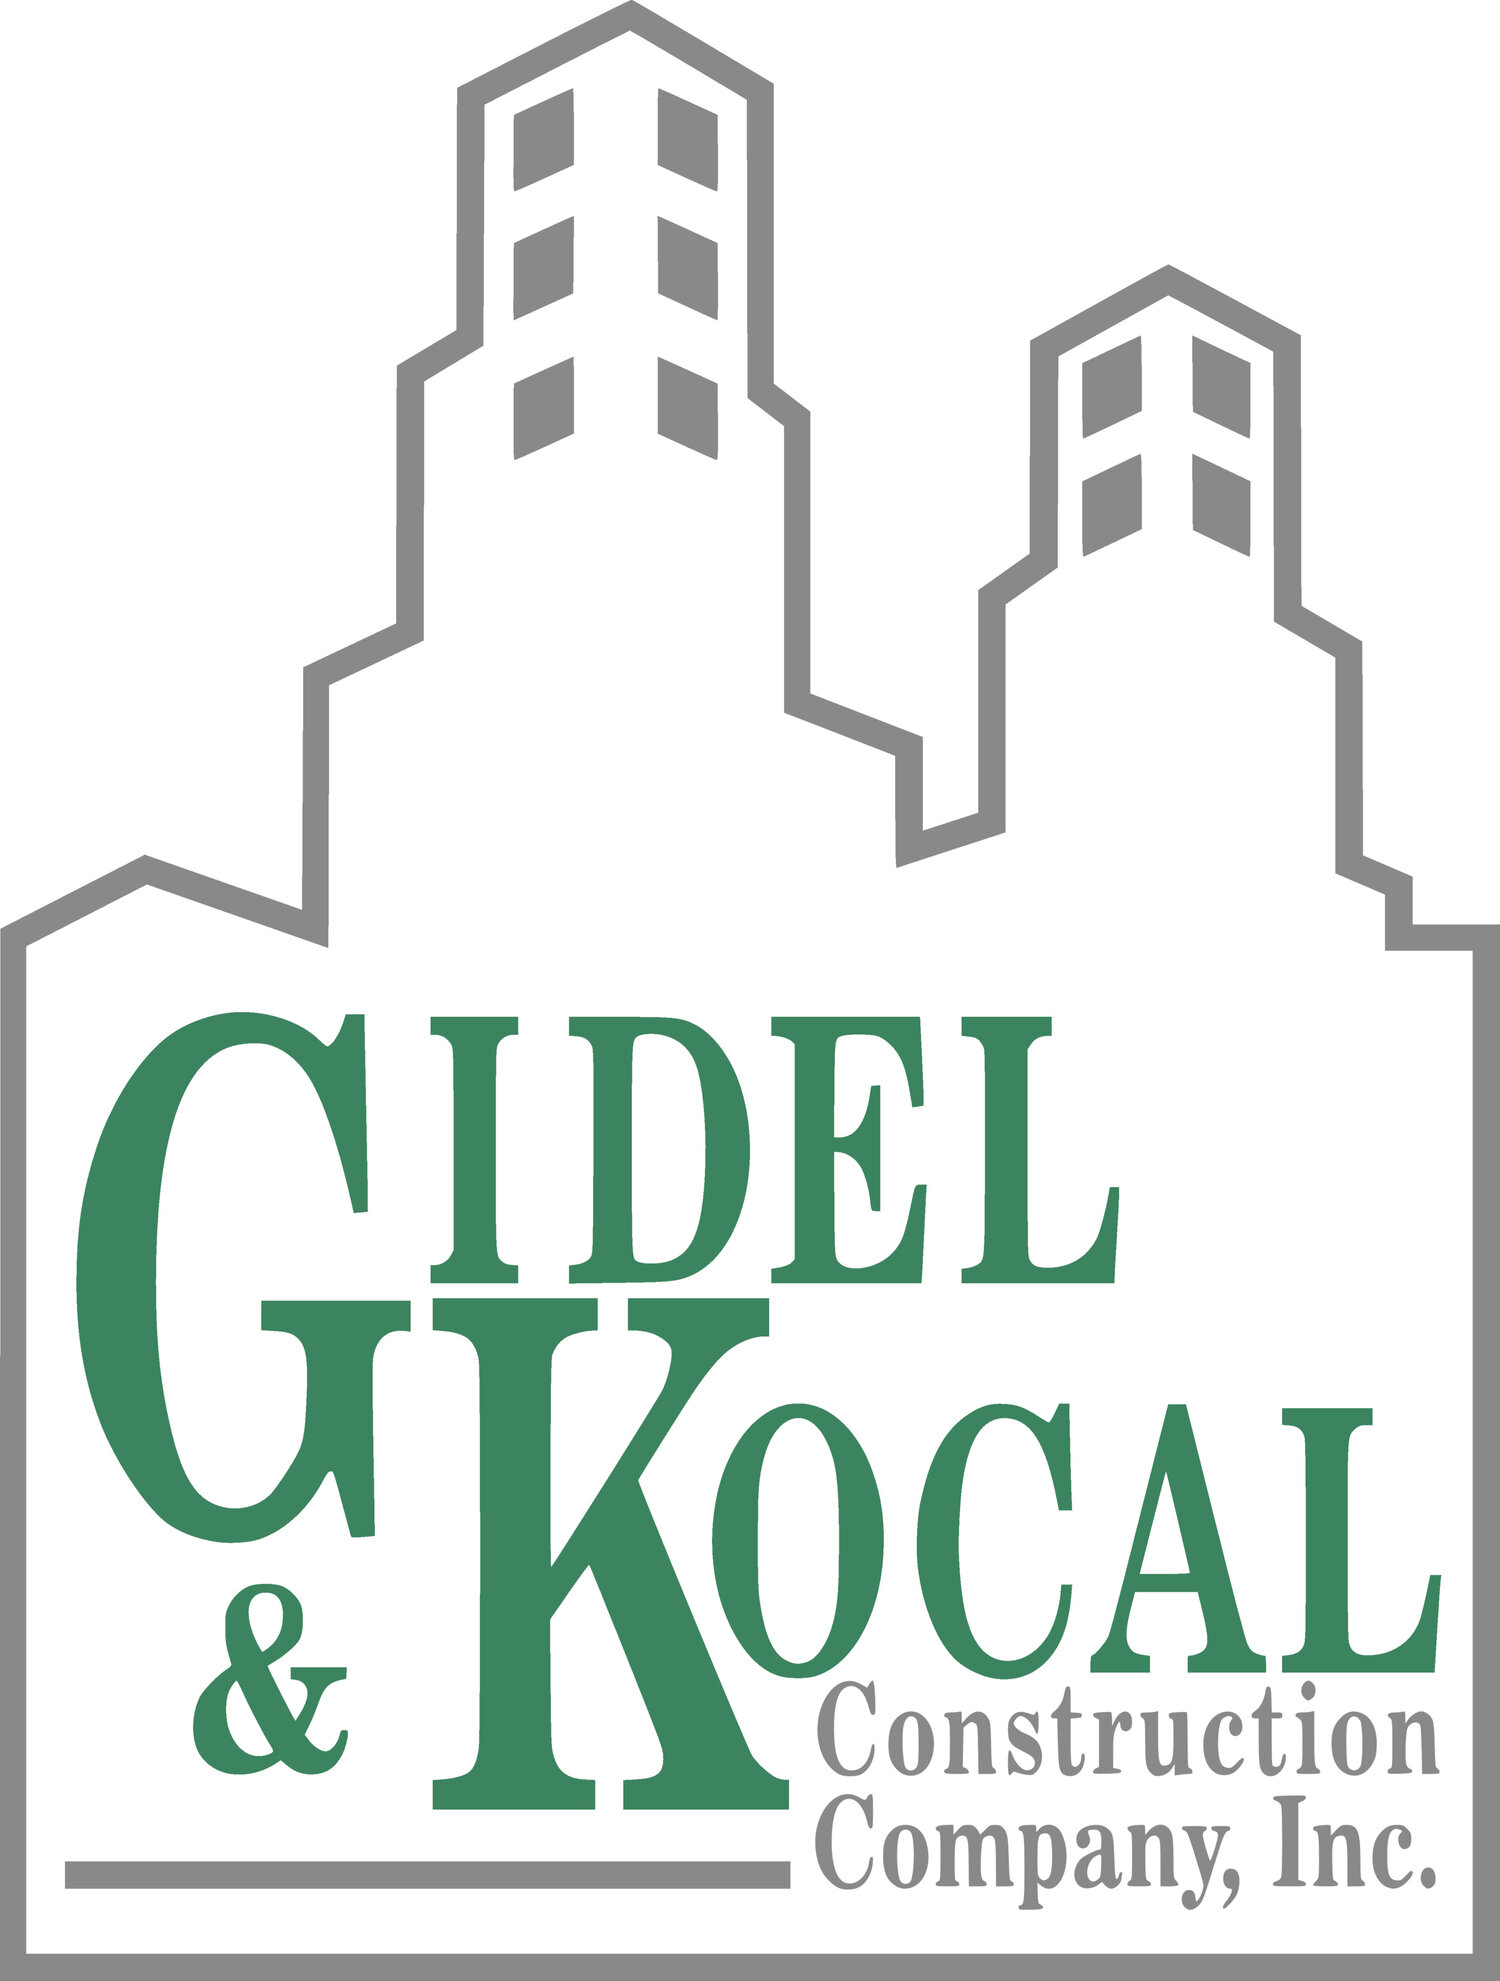 Gidel & Kocal Construction Company